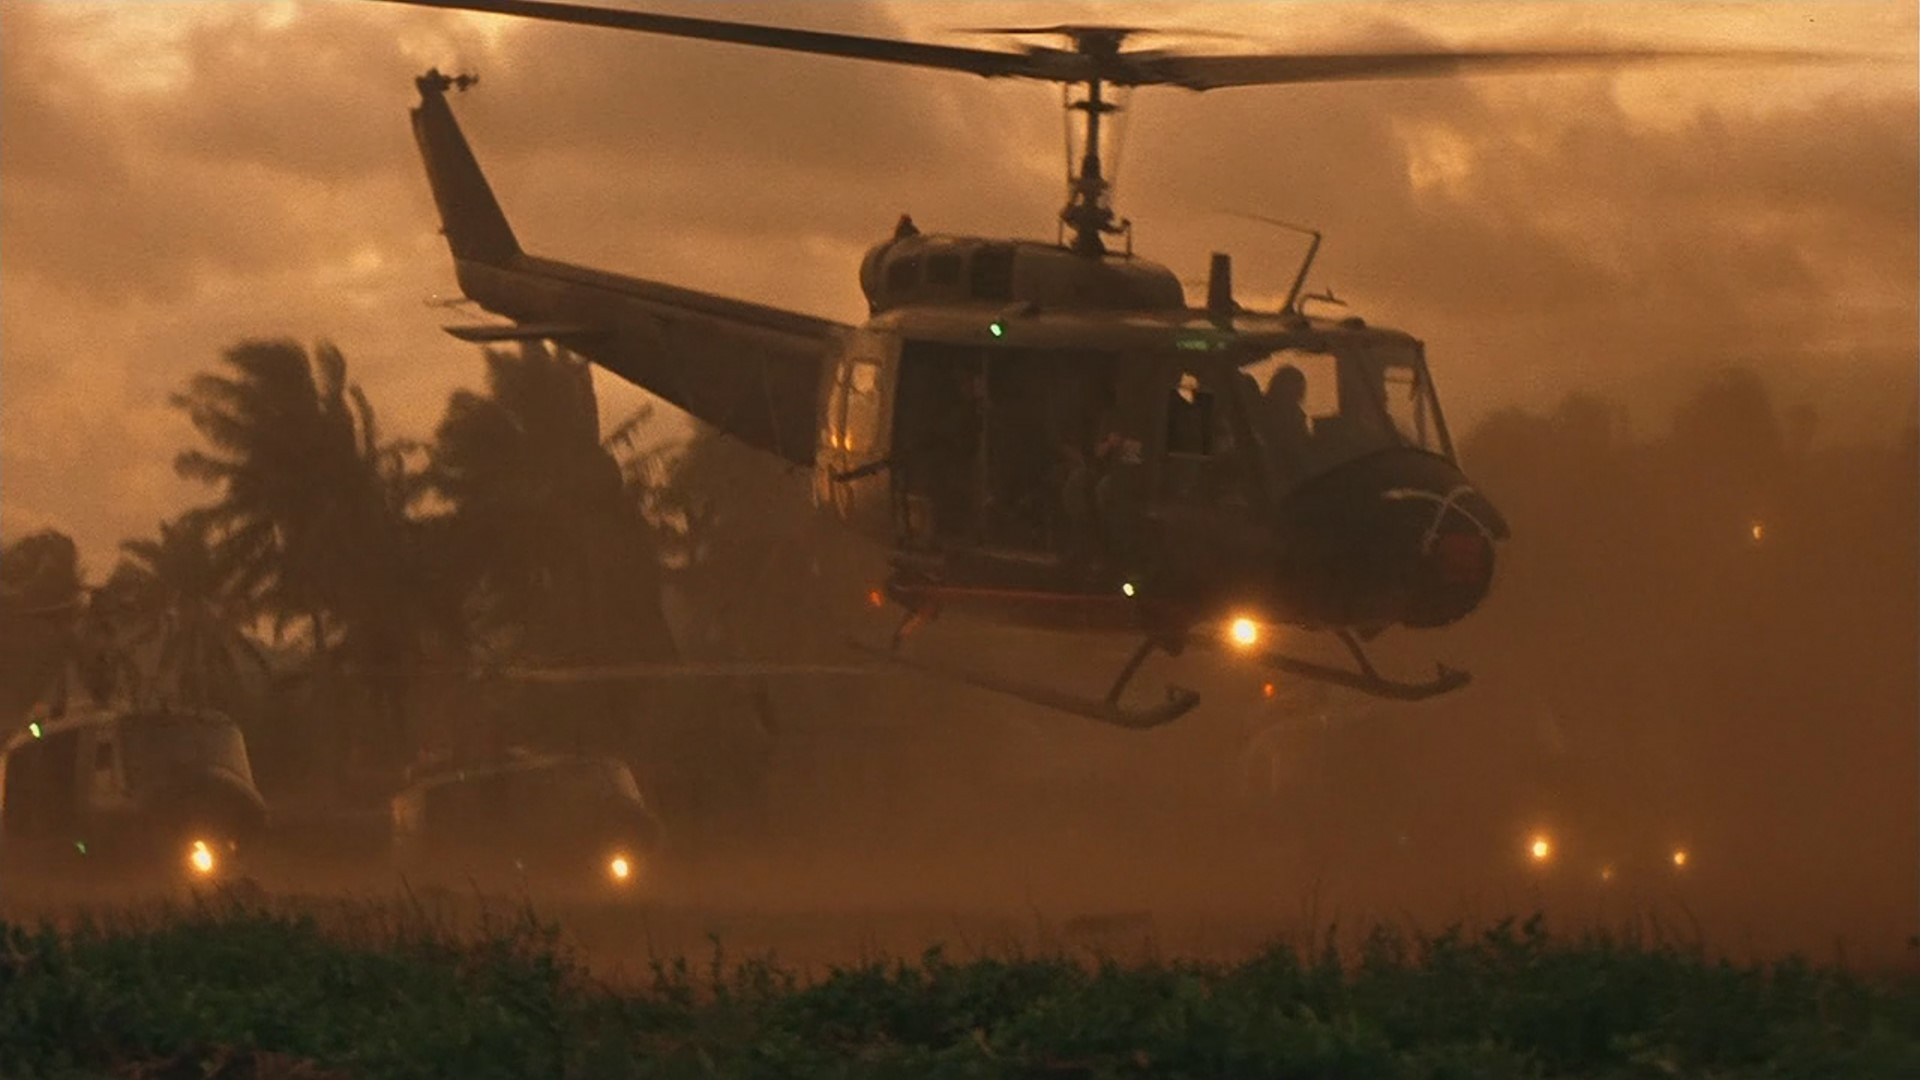 Apocalypse Now Redux helicopter military war h wallpaper 1920x1080 1920x1080